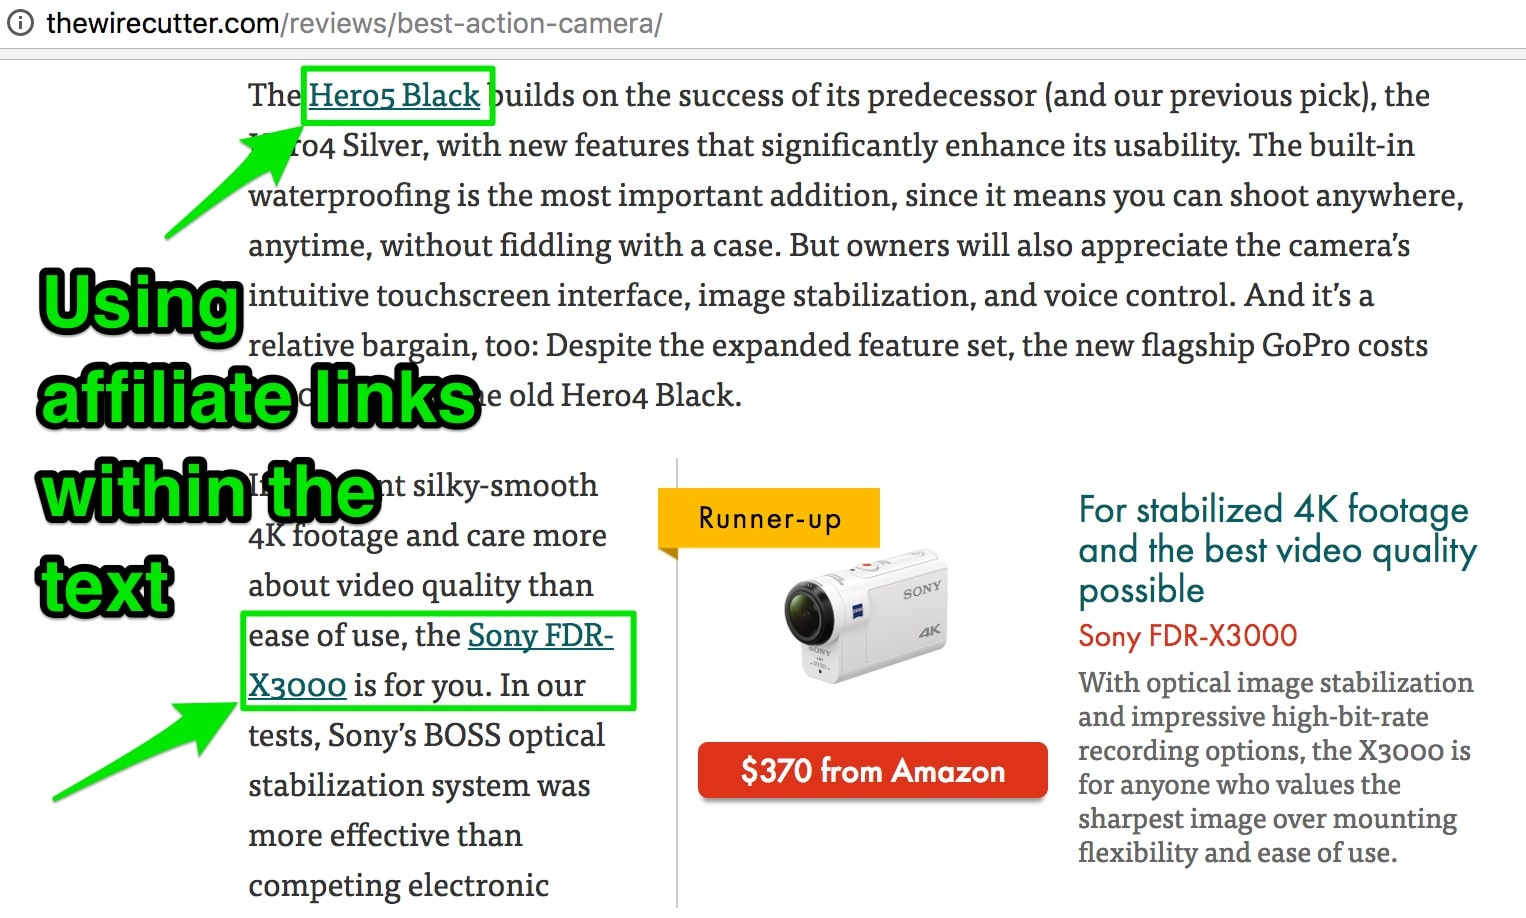 thewirecutter-text-links-in-the-body-The_Best_Action_Camera